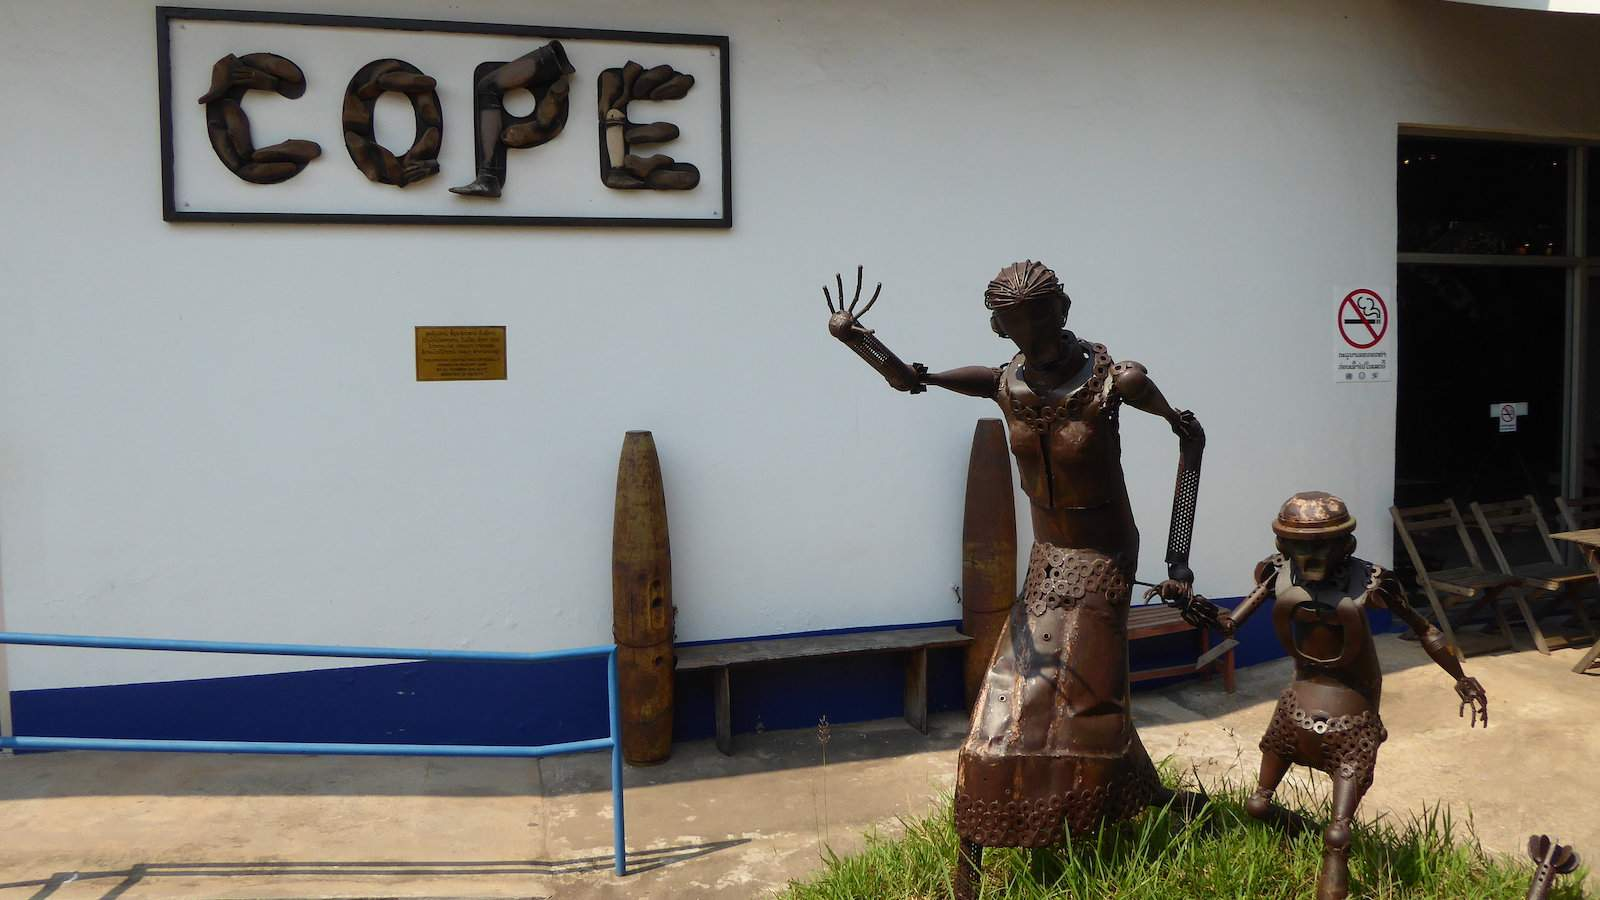 COPE is an incredible organization that helps Laotians who have lost limbs due to b๏mbs gain prosthetics